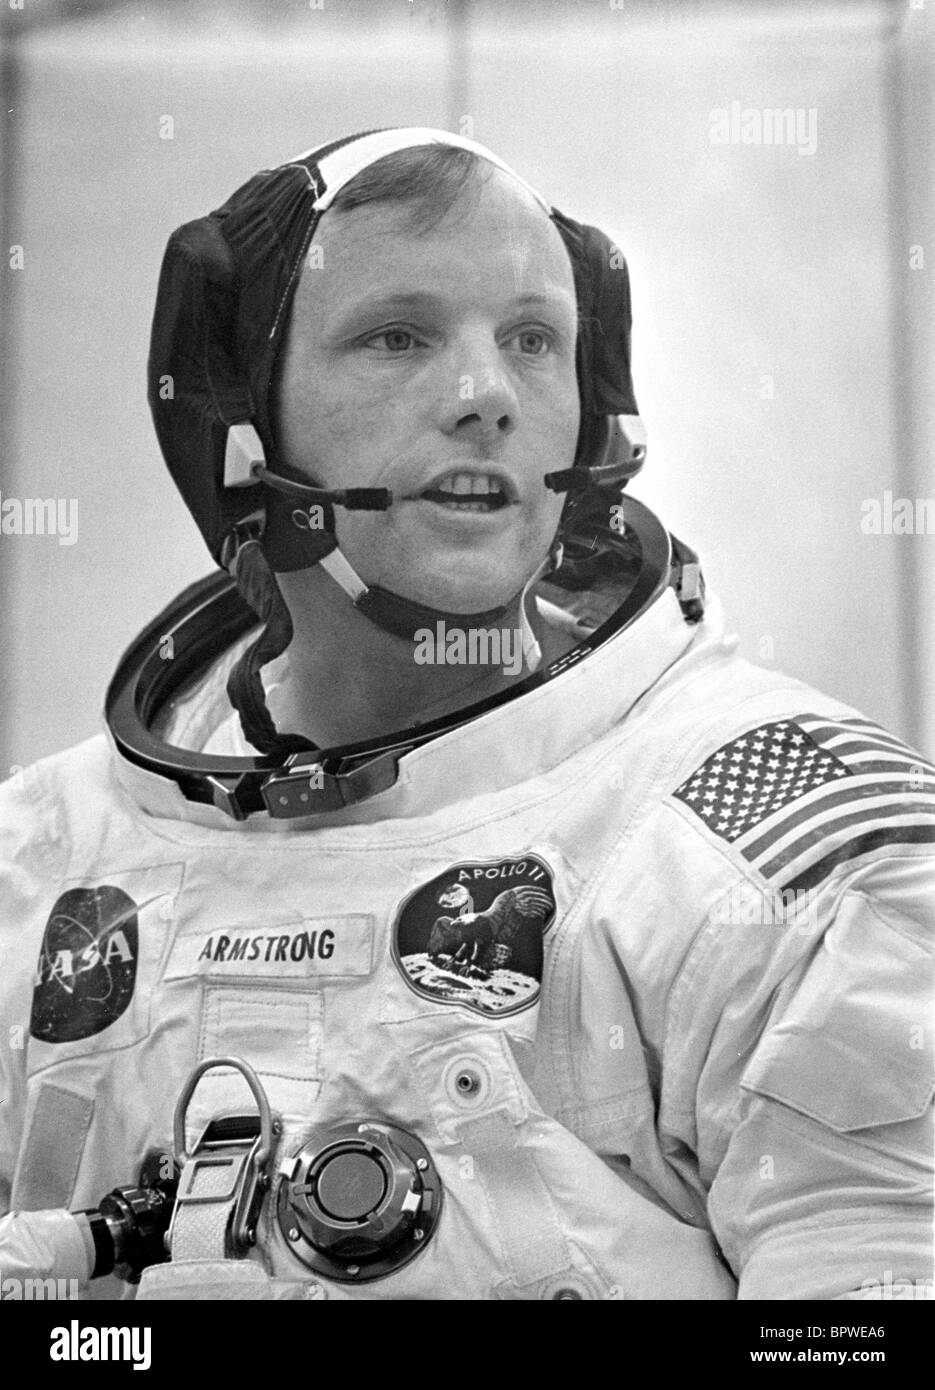 NEIL ARMSTRONG APOLLO 11 ASTRONAUT (1969) Stock Photo